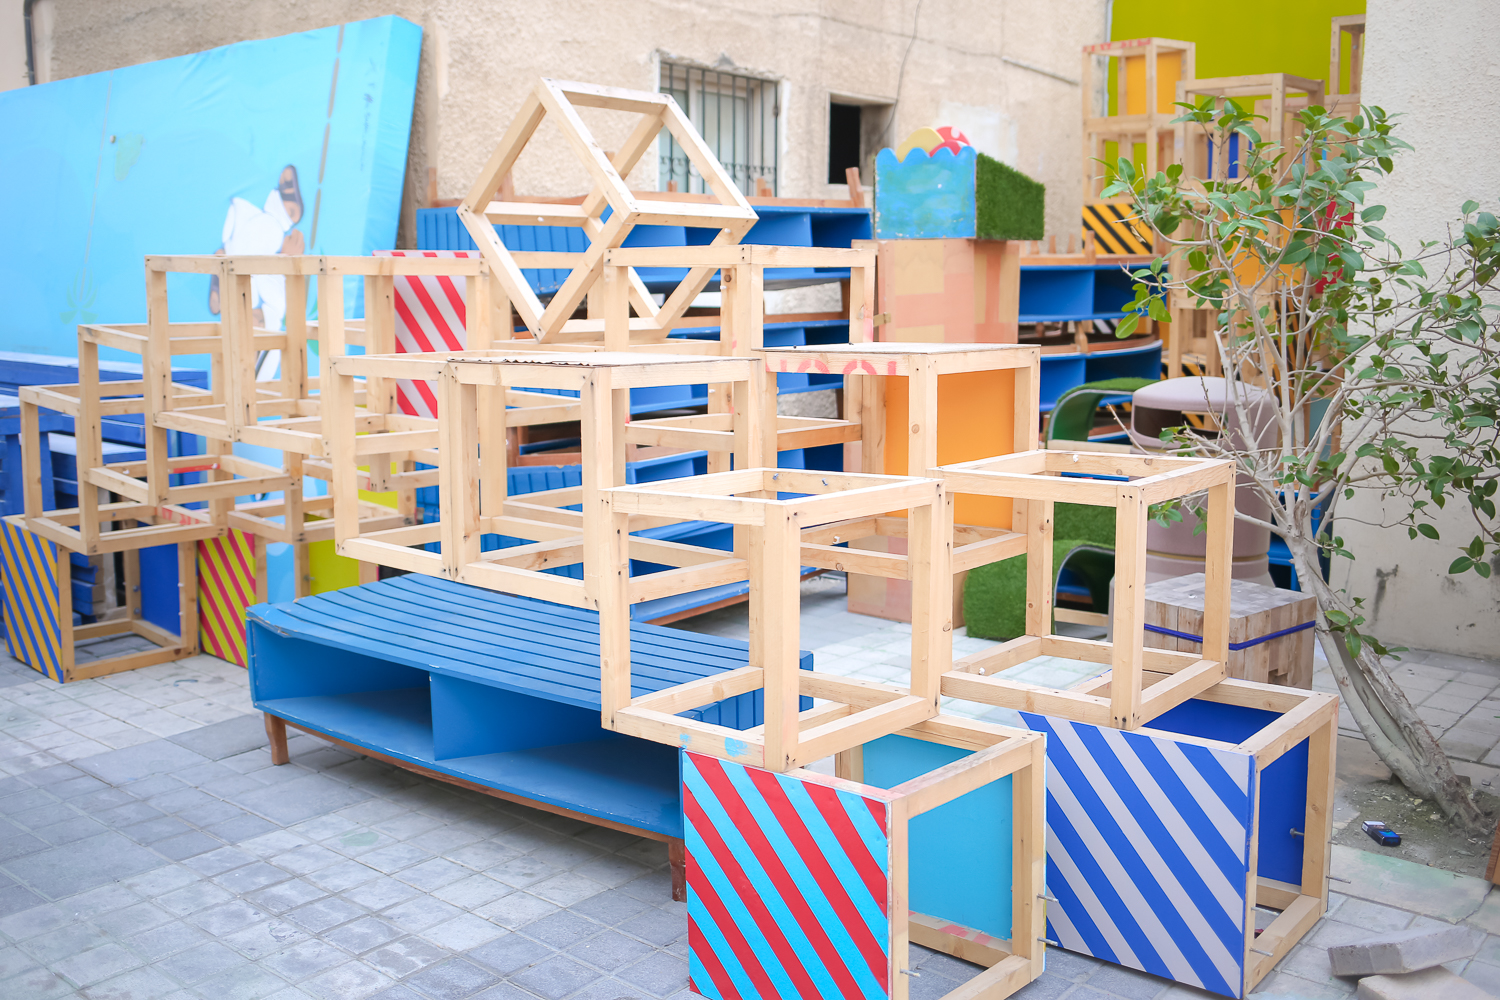 Public art and play space in the Adliya District of Manama, Bahrain.